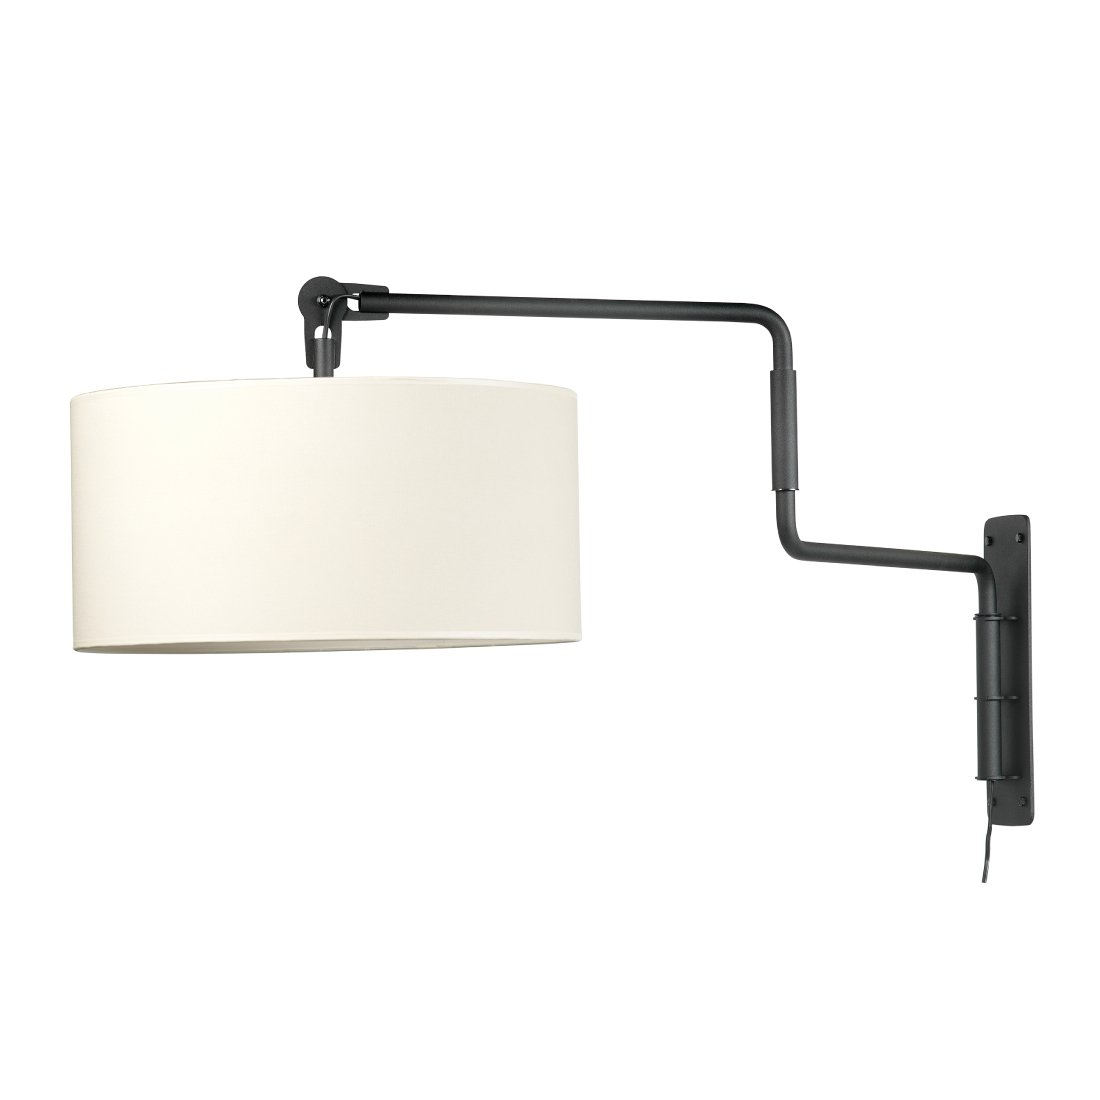 Functionals Swivel Light Wall Wandlamp